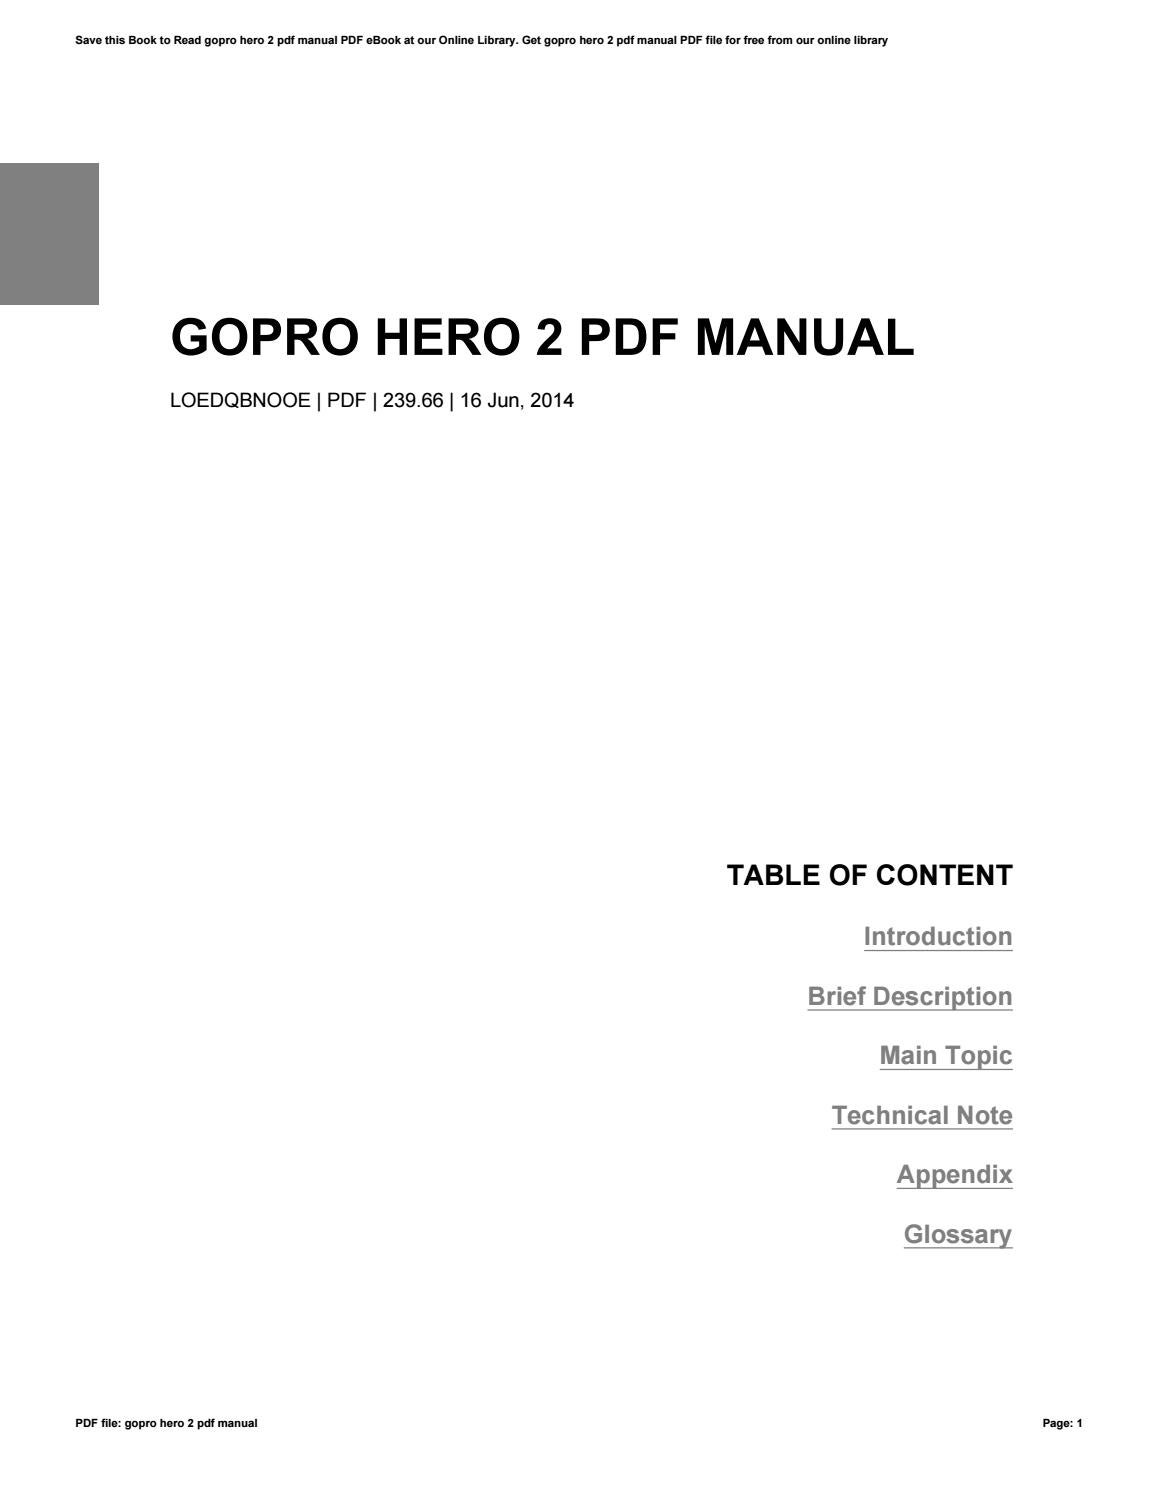 gopro hero 2 pdf manual by jerome issuu rh issuu com gopro hero 2 manual pdf gopro hero 2 manual update